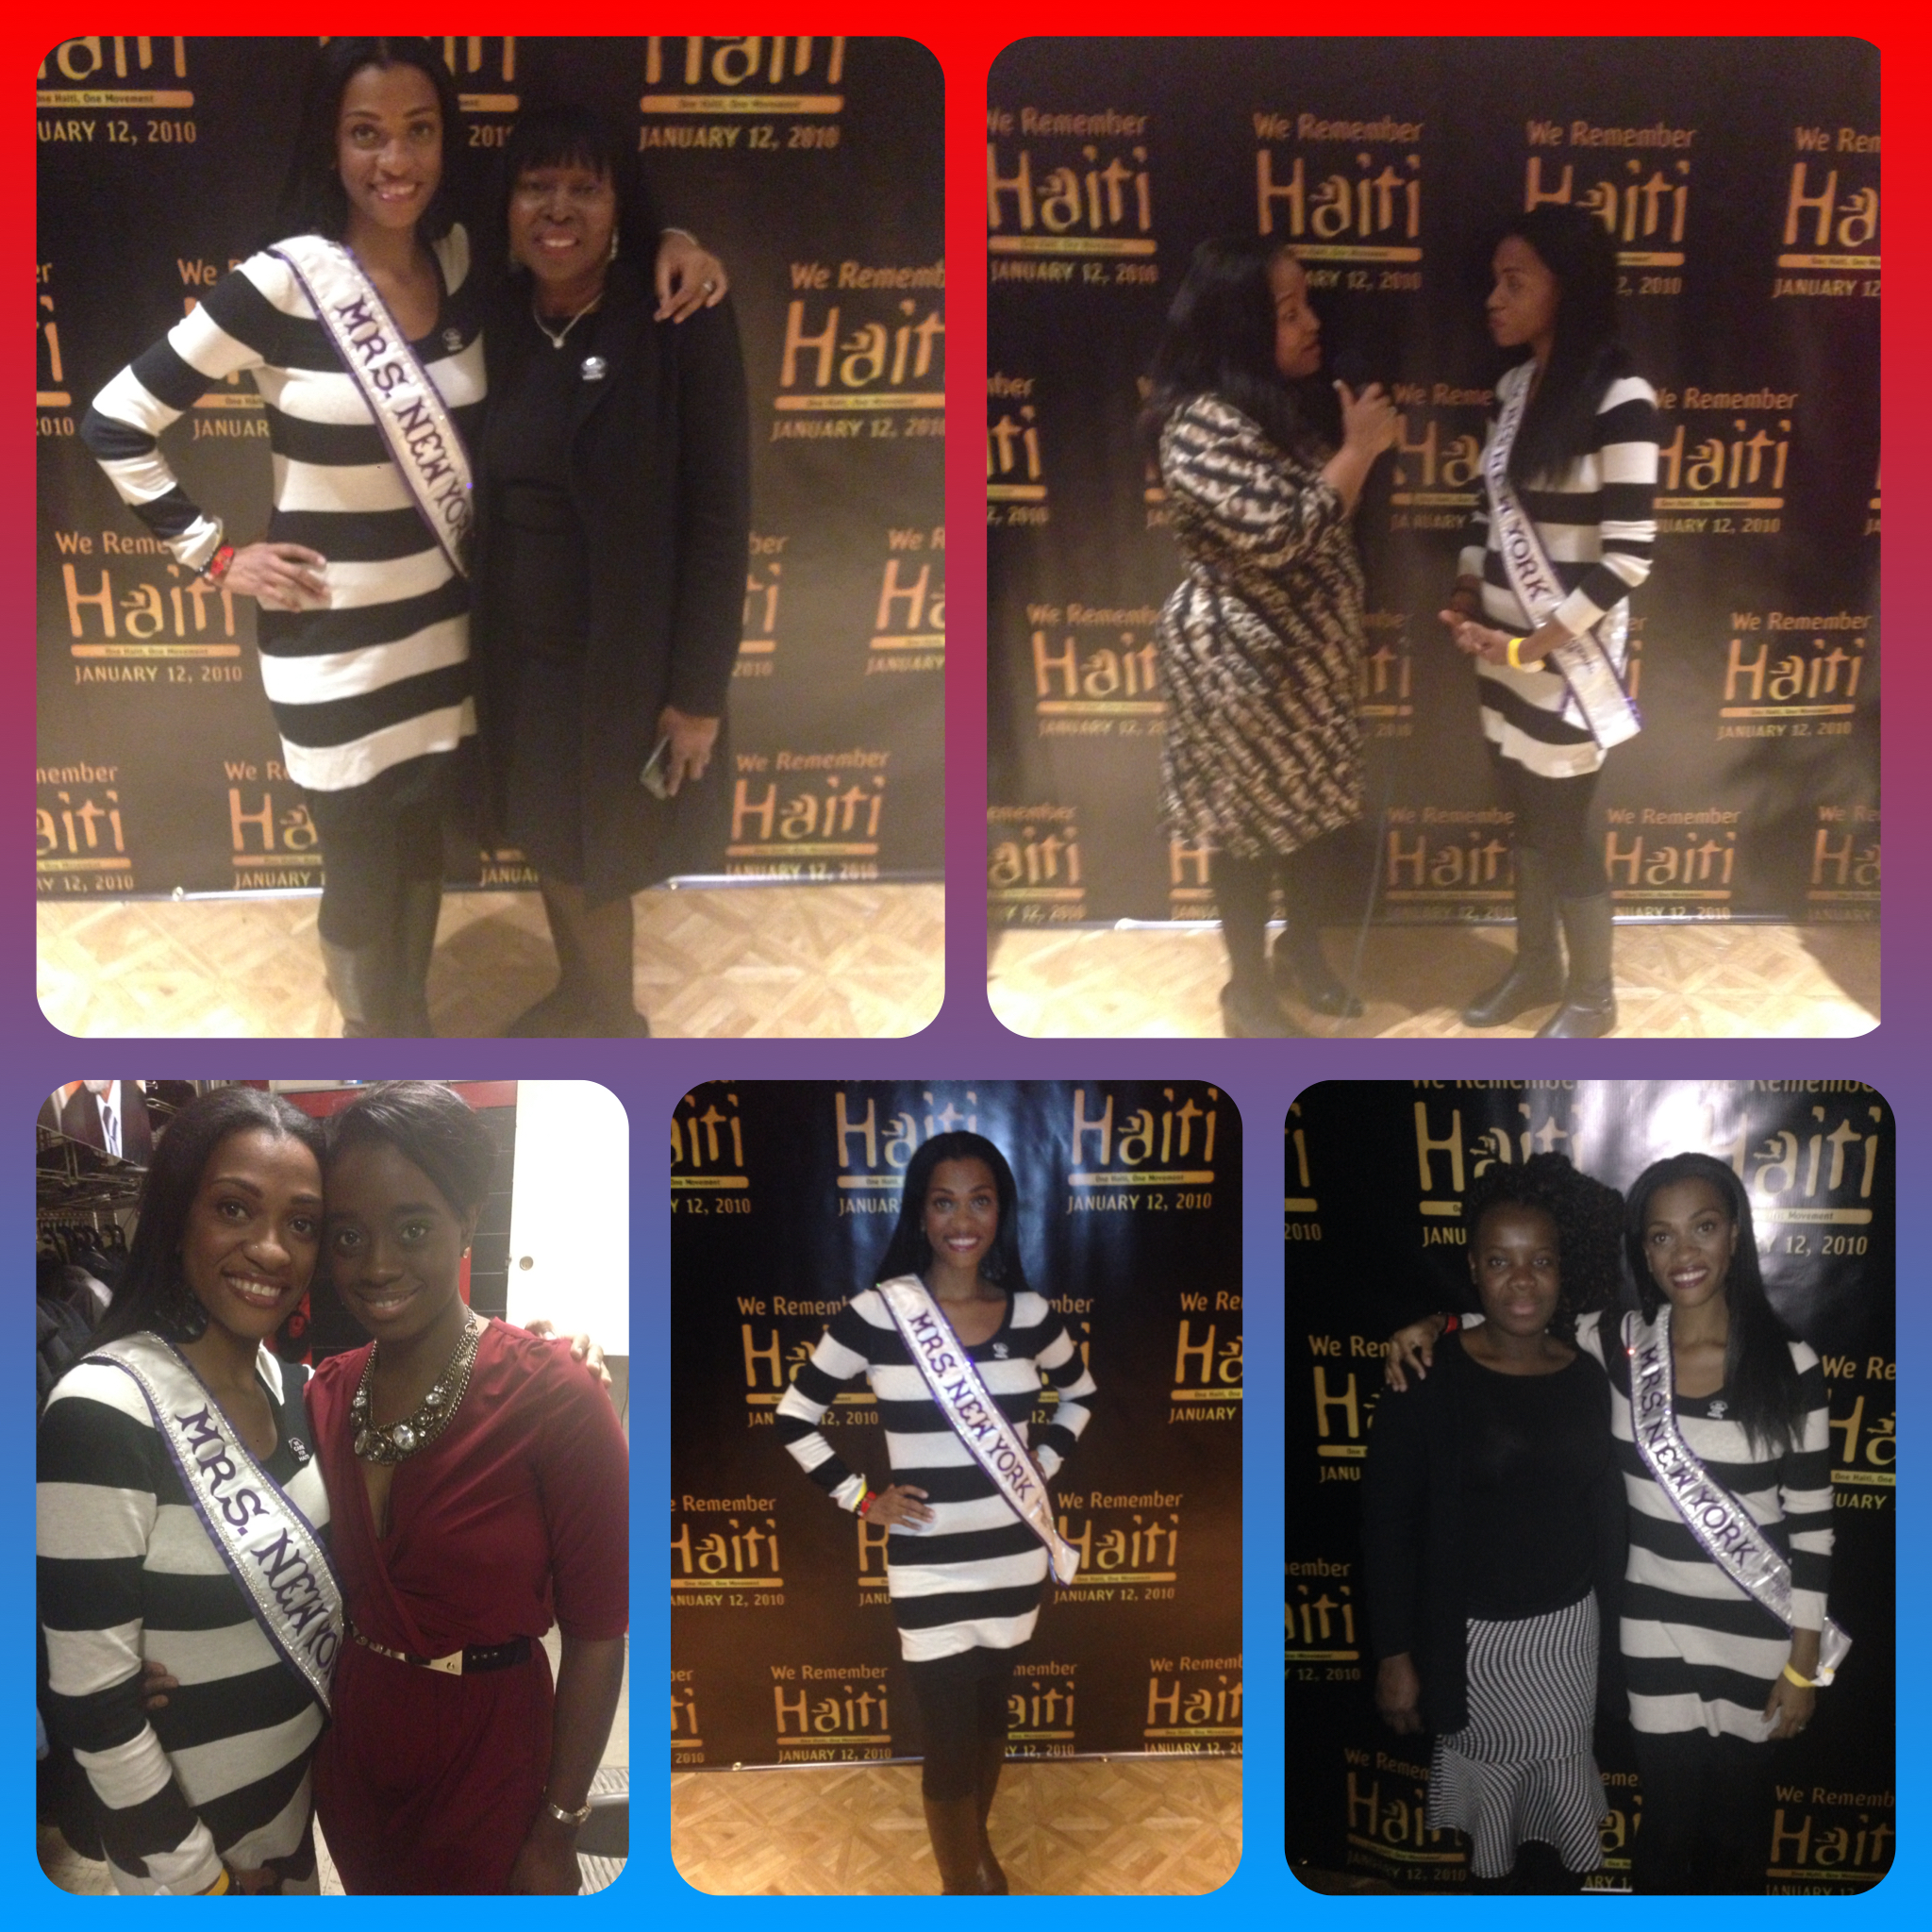 Hanging with some awesome women! Margarette Tropnas (my cousin), Being interviewed by Monalisa J. Ferrari, Jihan Antoine co-founder of BelTiFi, Nadege Fleurimond, Chef and author of Haiti Uncovered